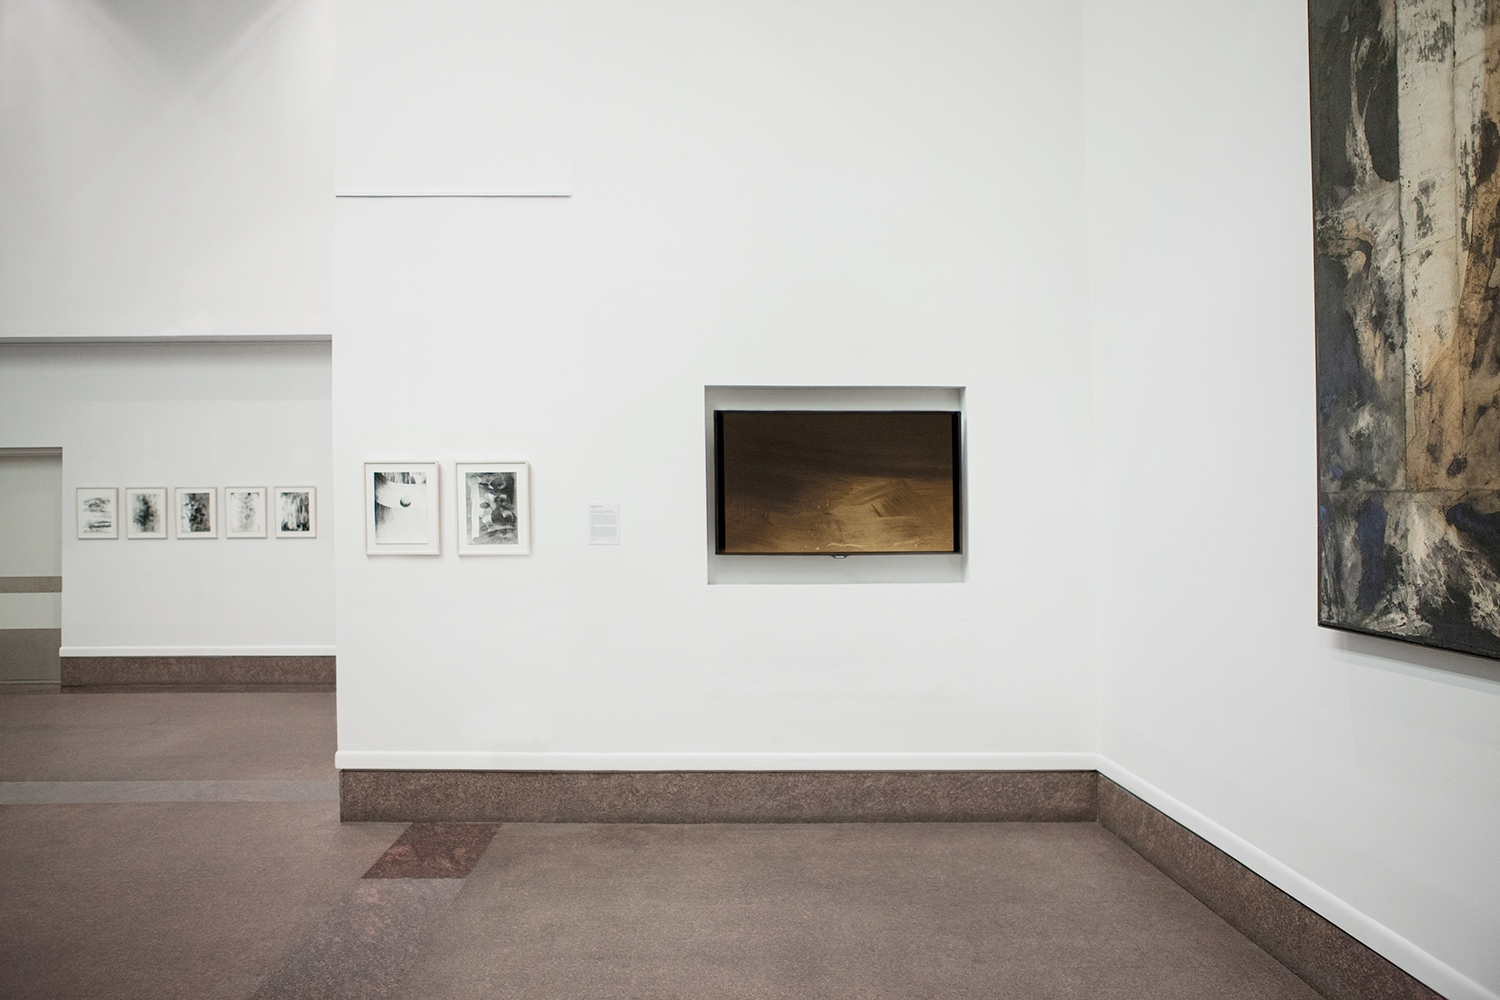 Installation View: German Consulate General, New York  History of Touches , 2017 © Elias Wessel